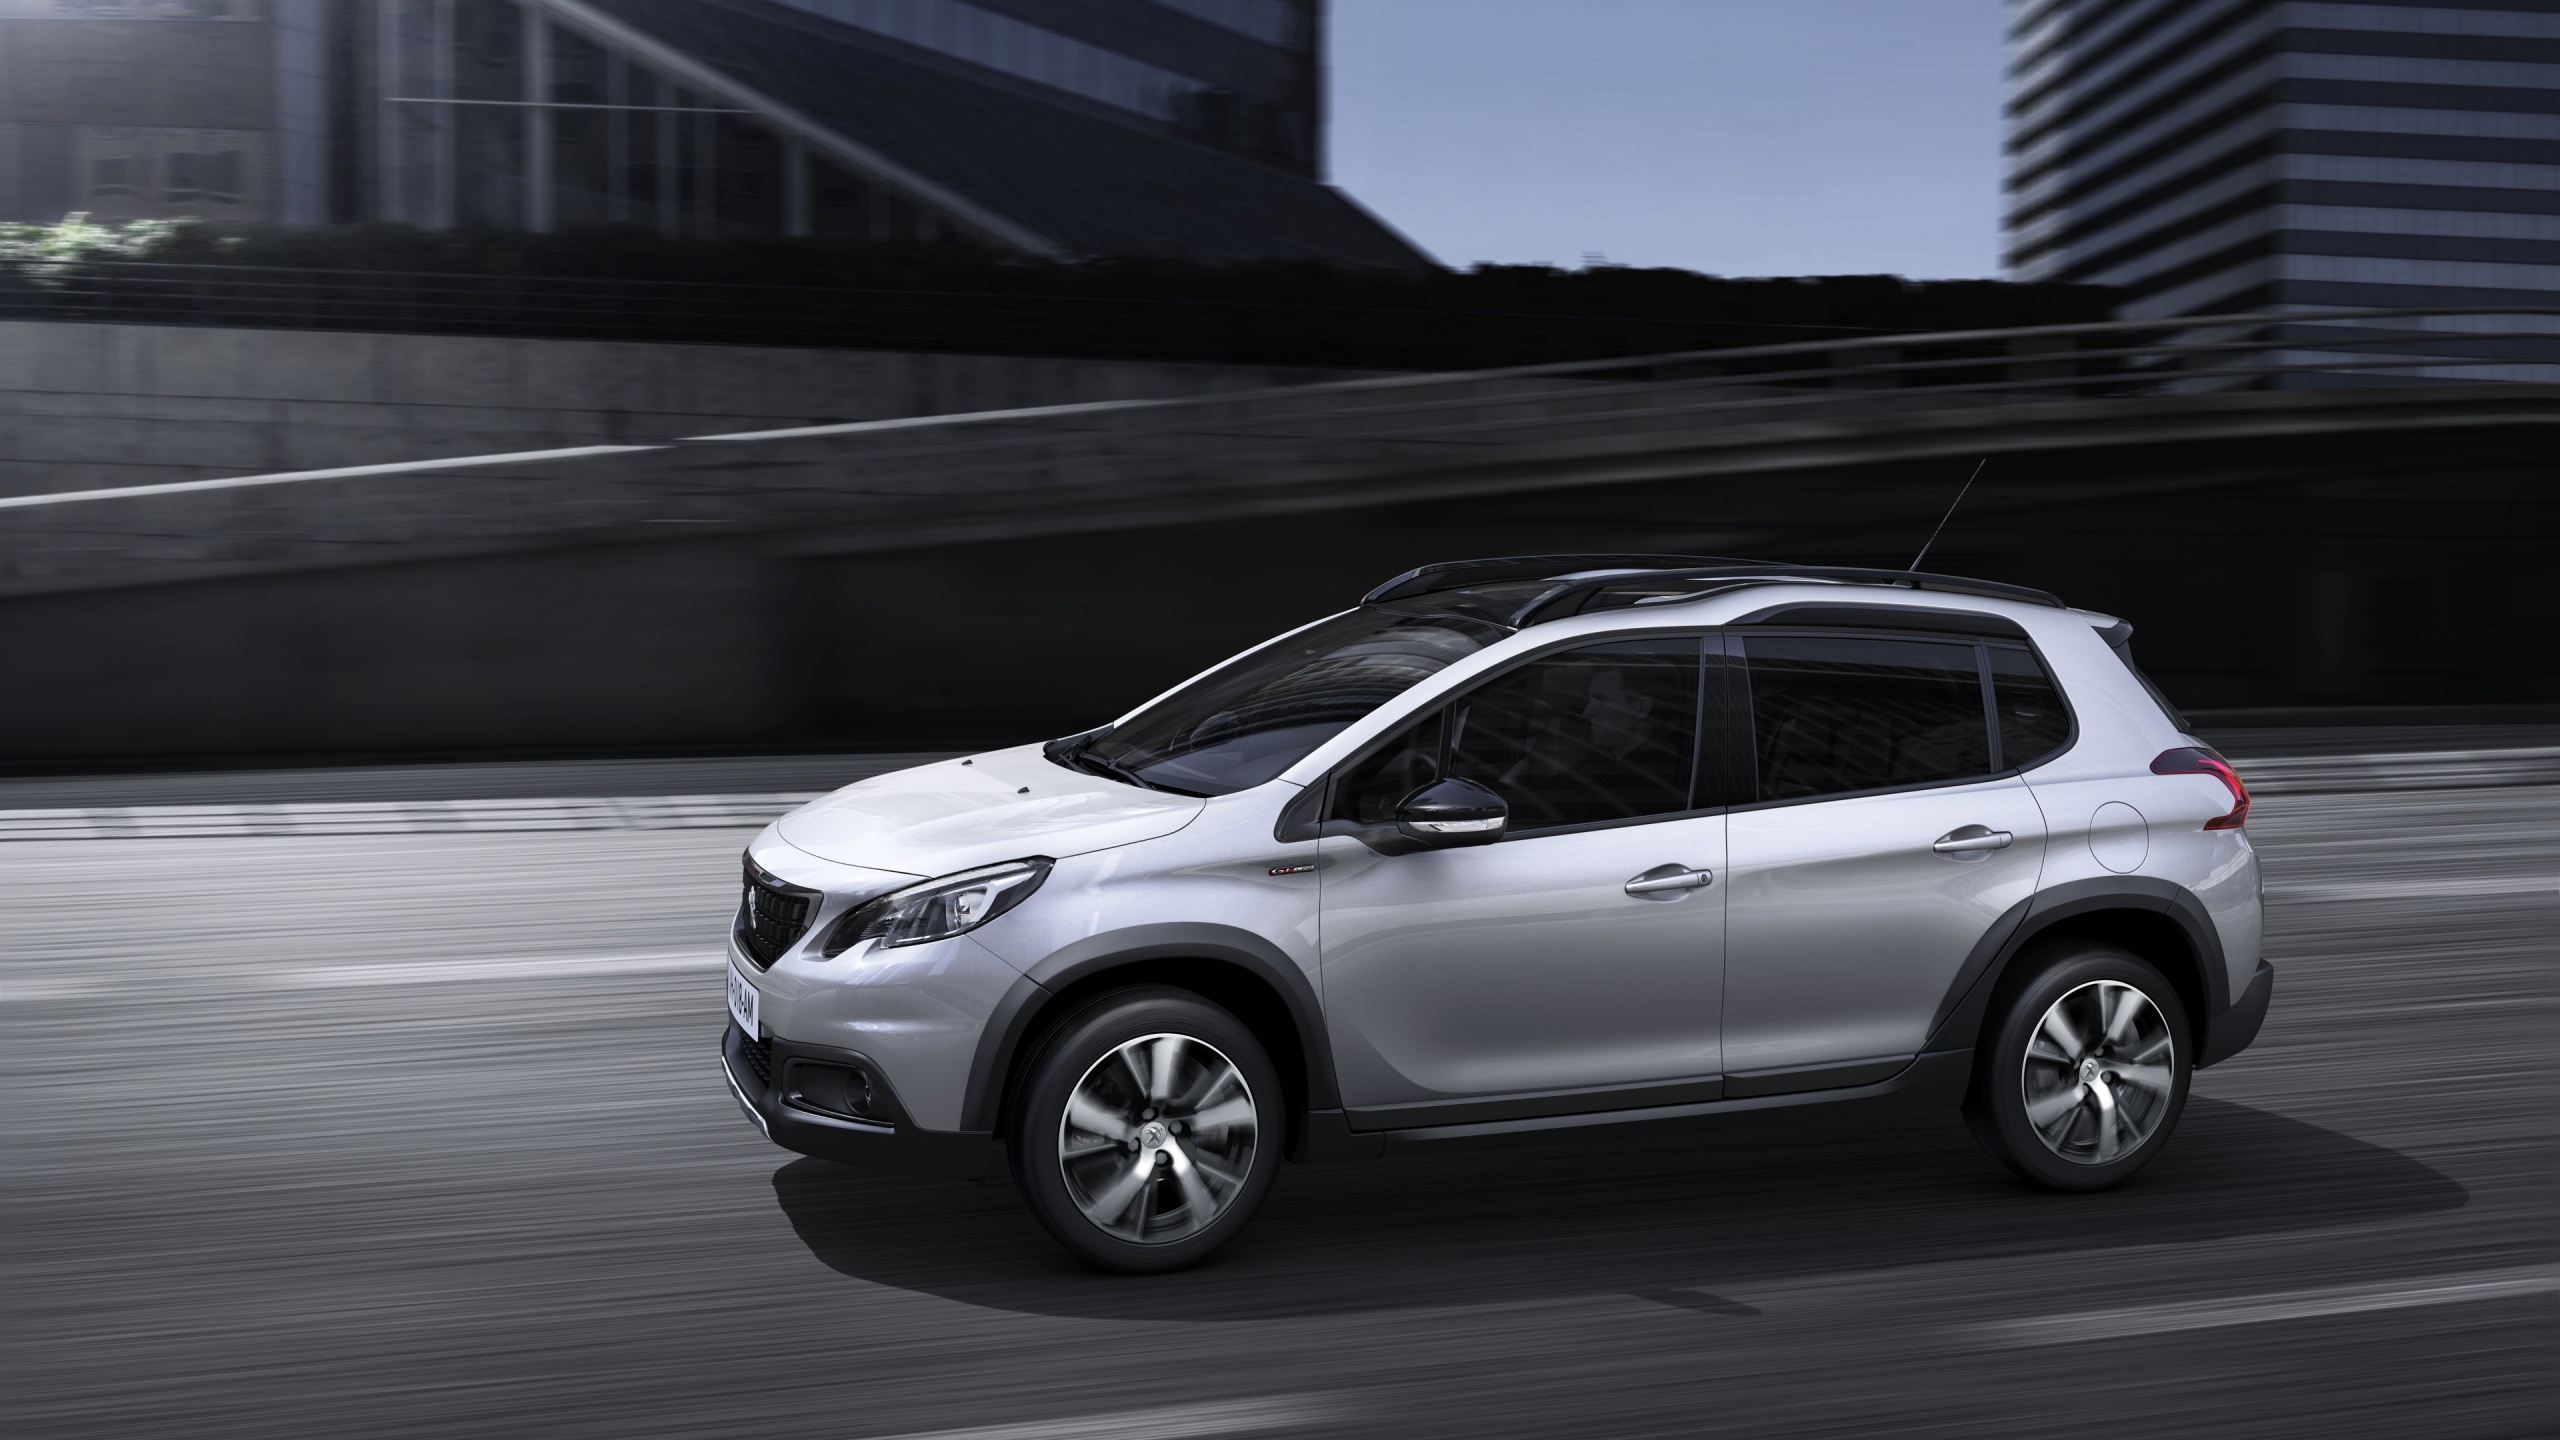 Peugeot 2008 Gt Line 2017 Photo 02 Taille 2560x1440